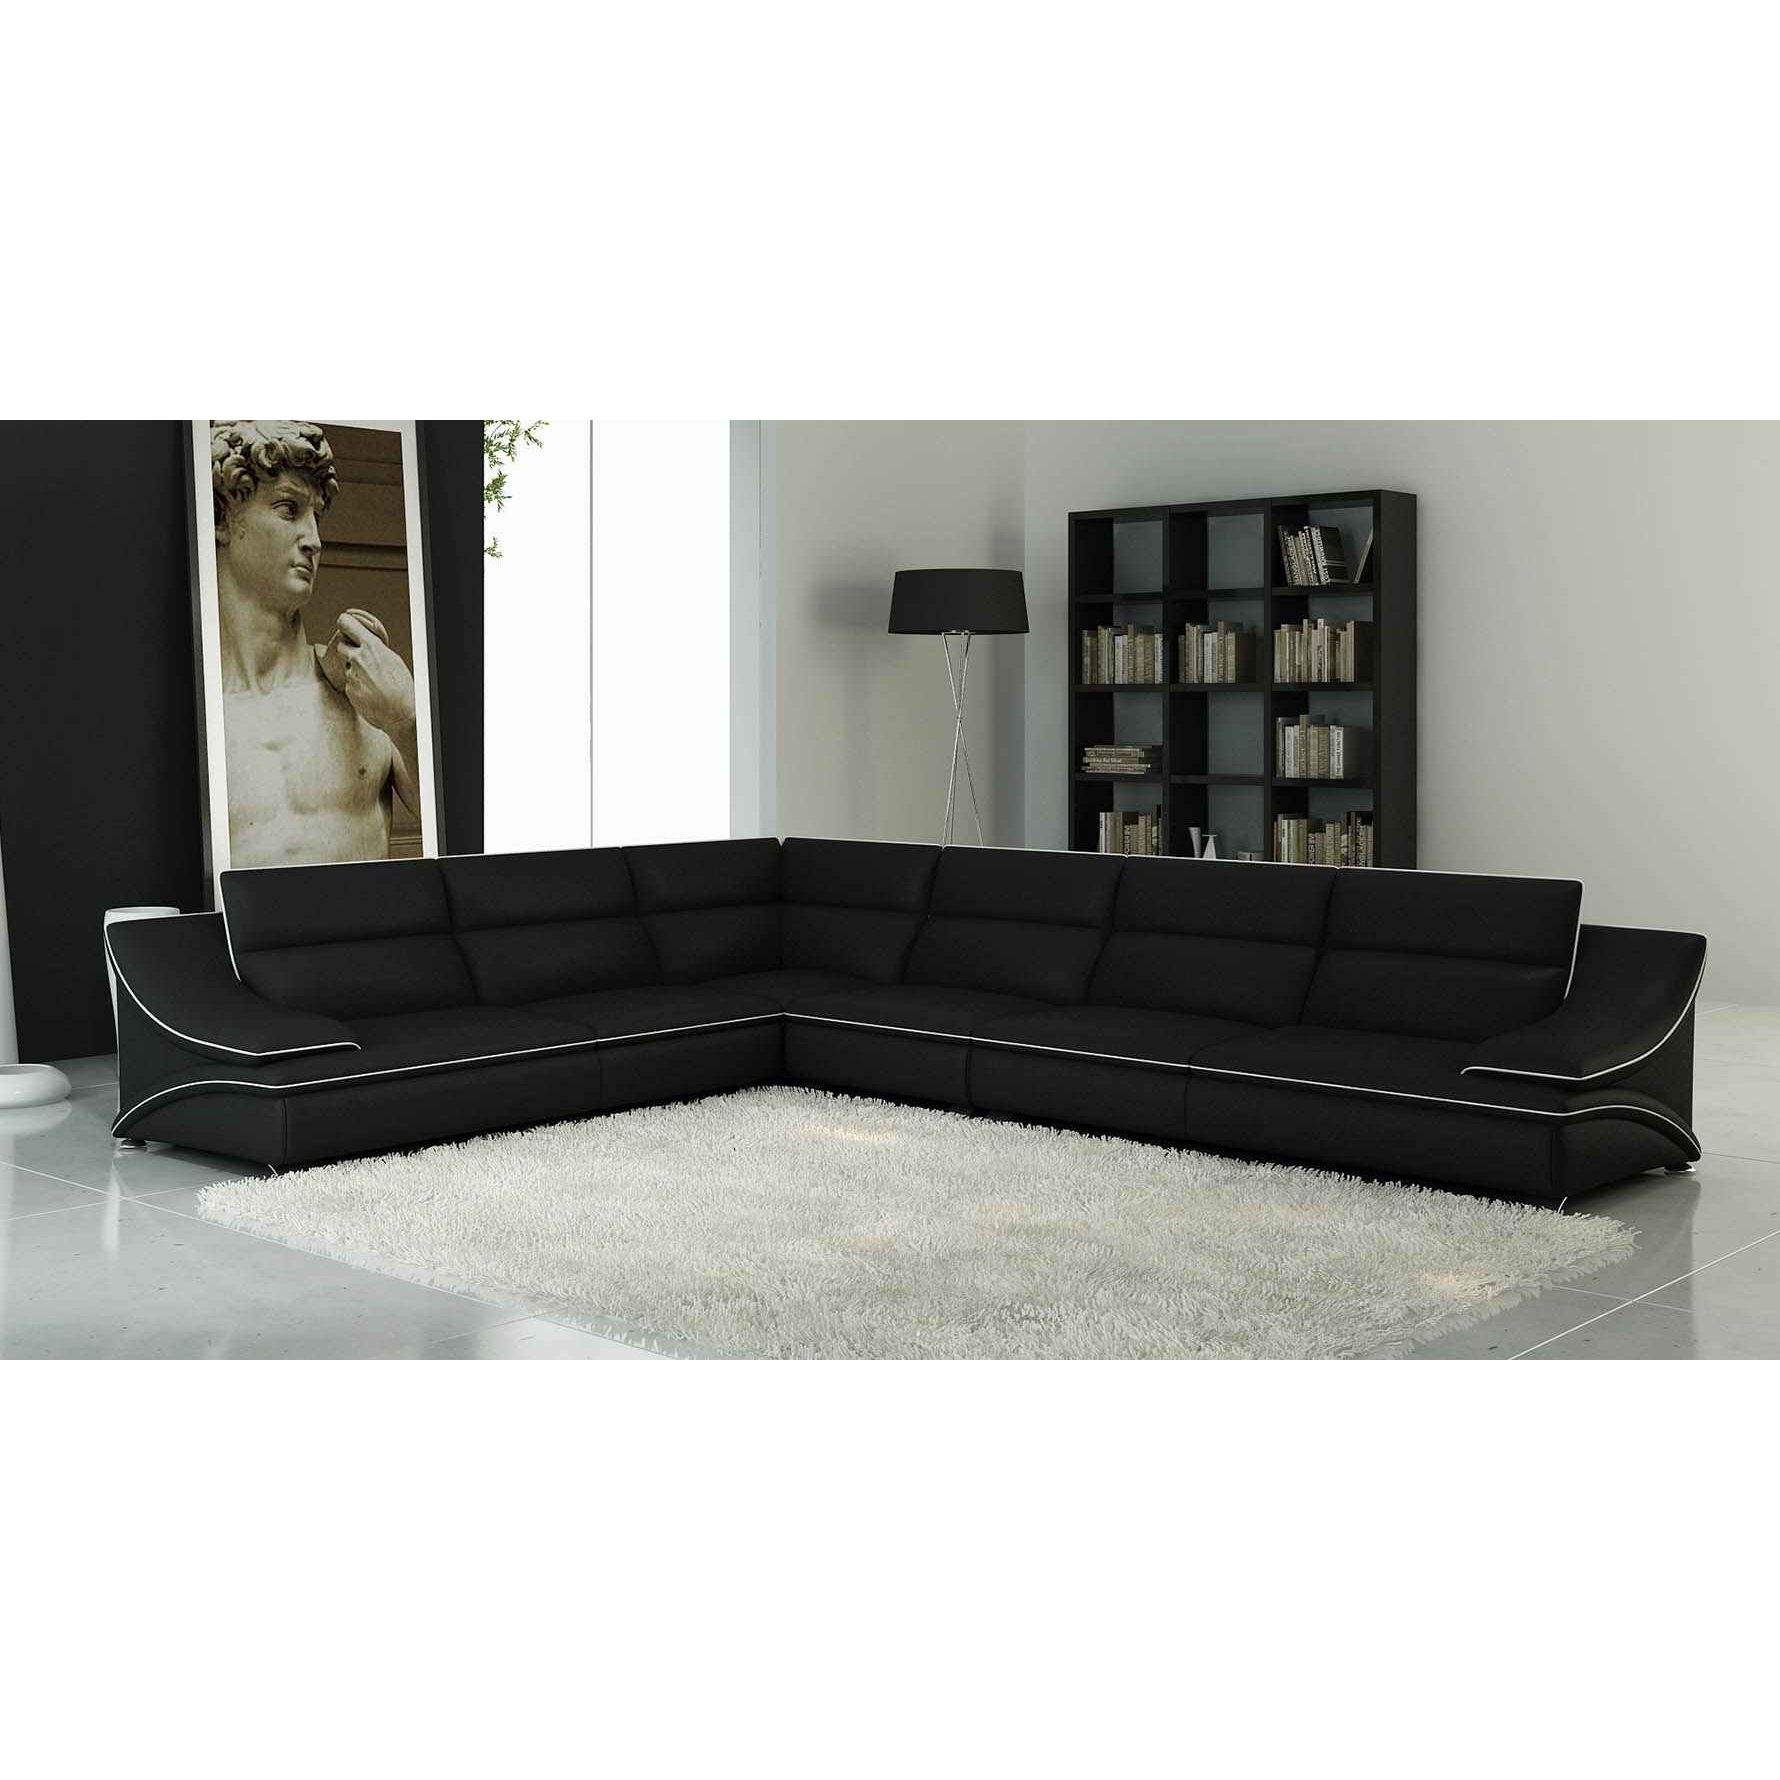 Deco in paris canape d angle modulable cuir design noir for Grand canape d angle 8 places